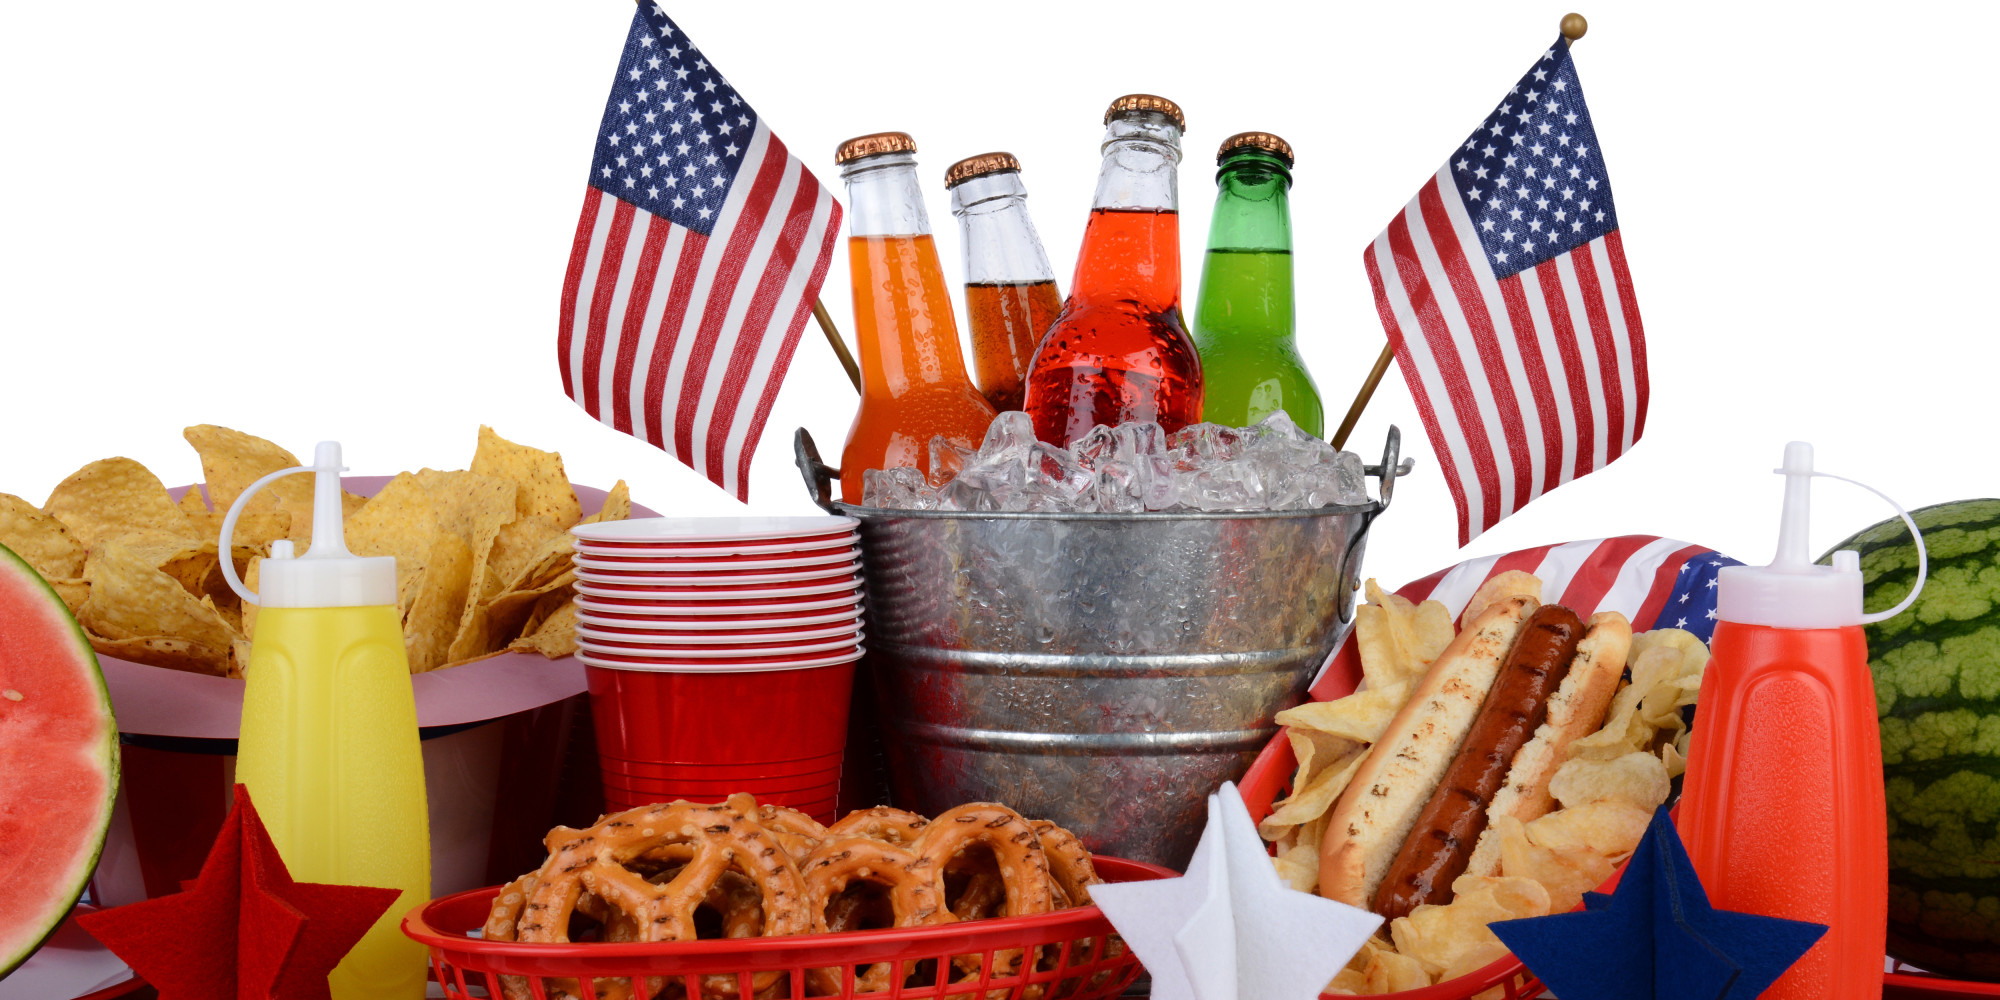 10 Best All-American Dishes for Your July 4th Cookout ...